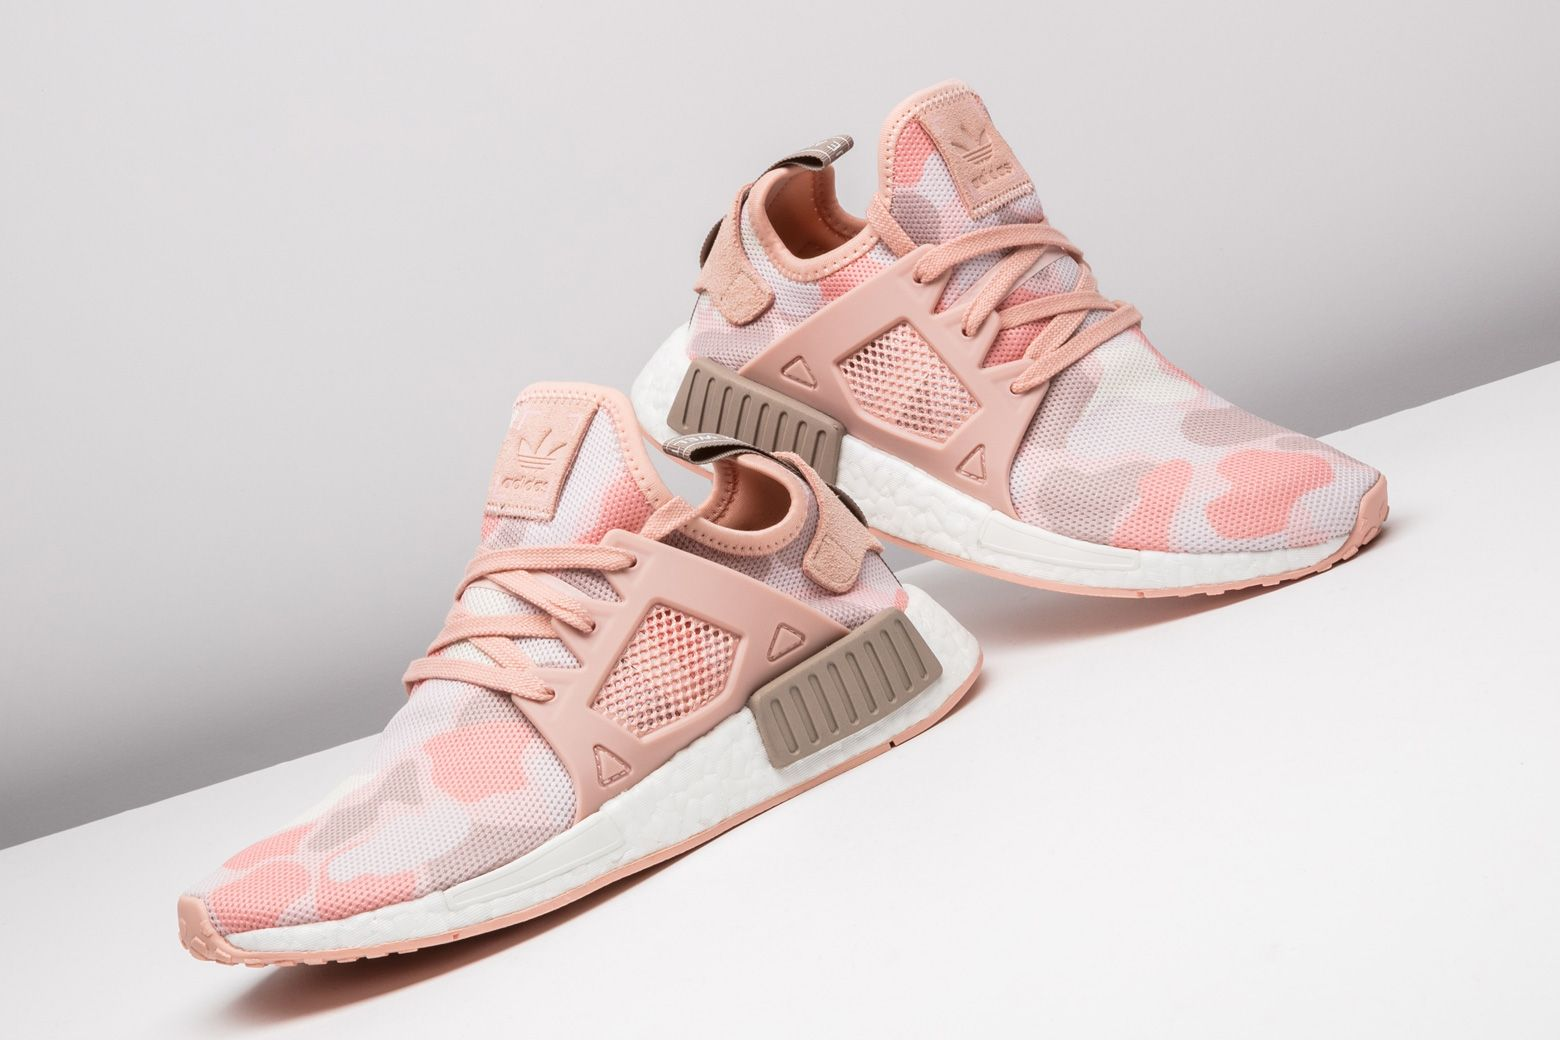 3a7981f273110 adidas delivers this NMD XR1 in pink duck camo for women who love the shoe.